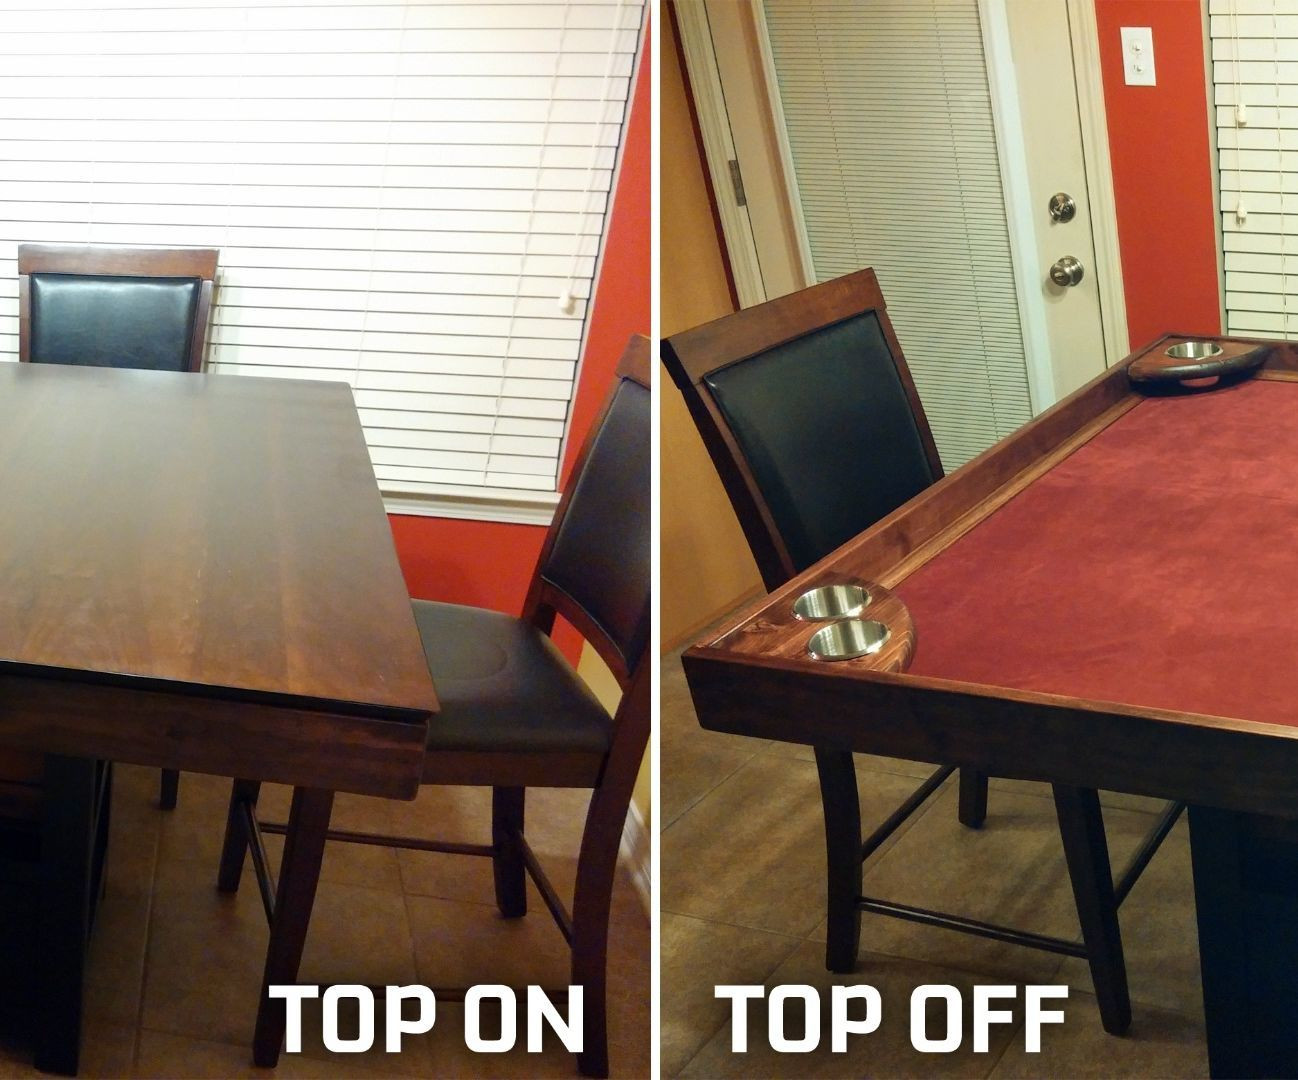 Best ideas about DIY Game Table . Save or Pin DIY Game Table Conversion Now.